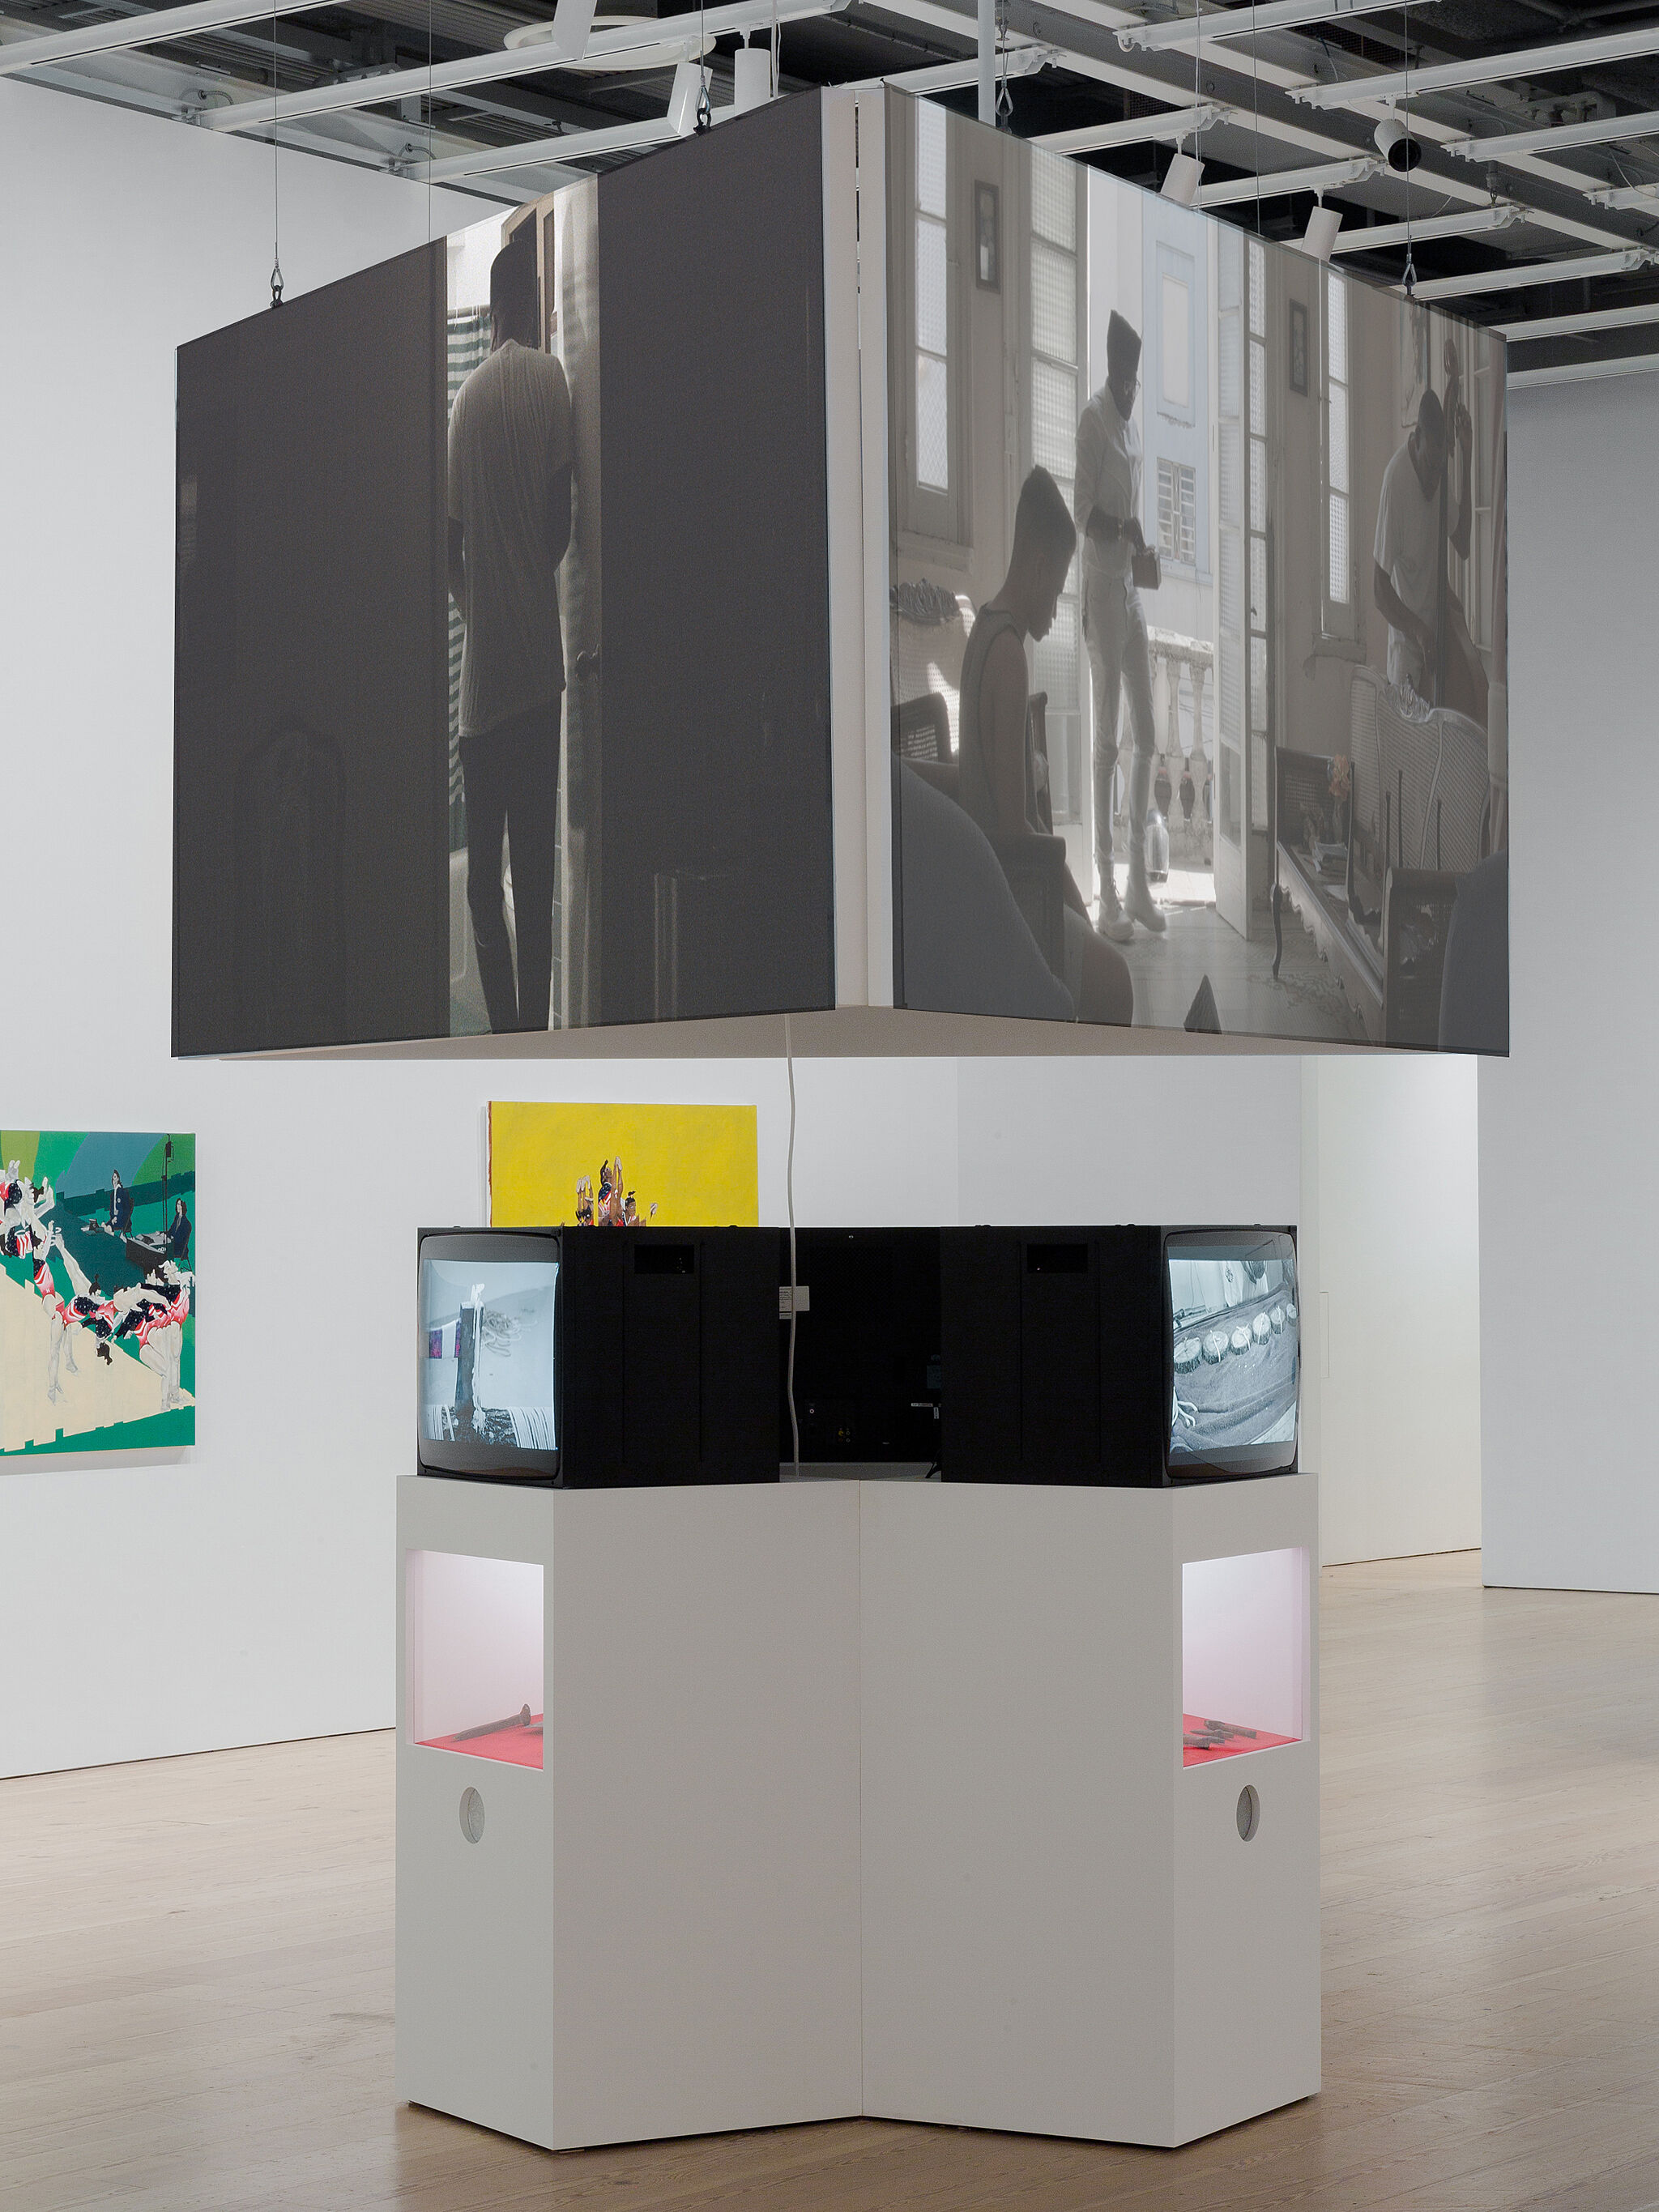 A photo of a video and multi-media installation in the Whitney galleries.